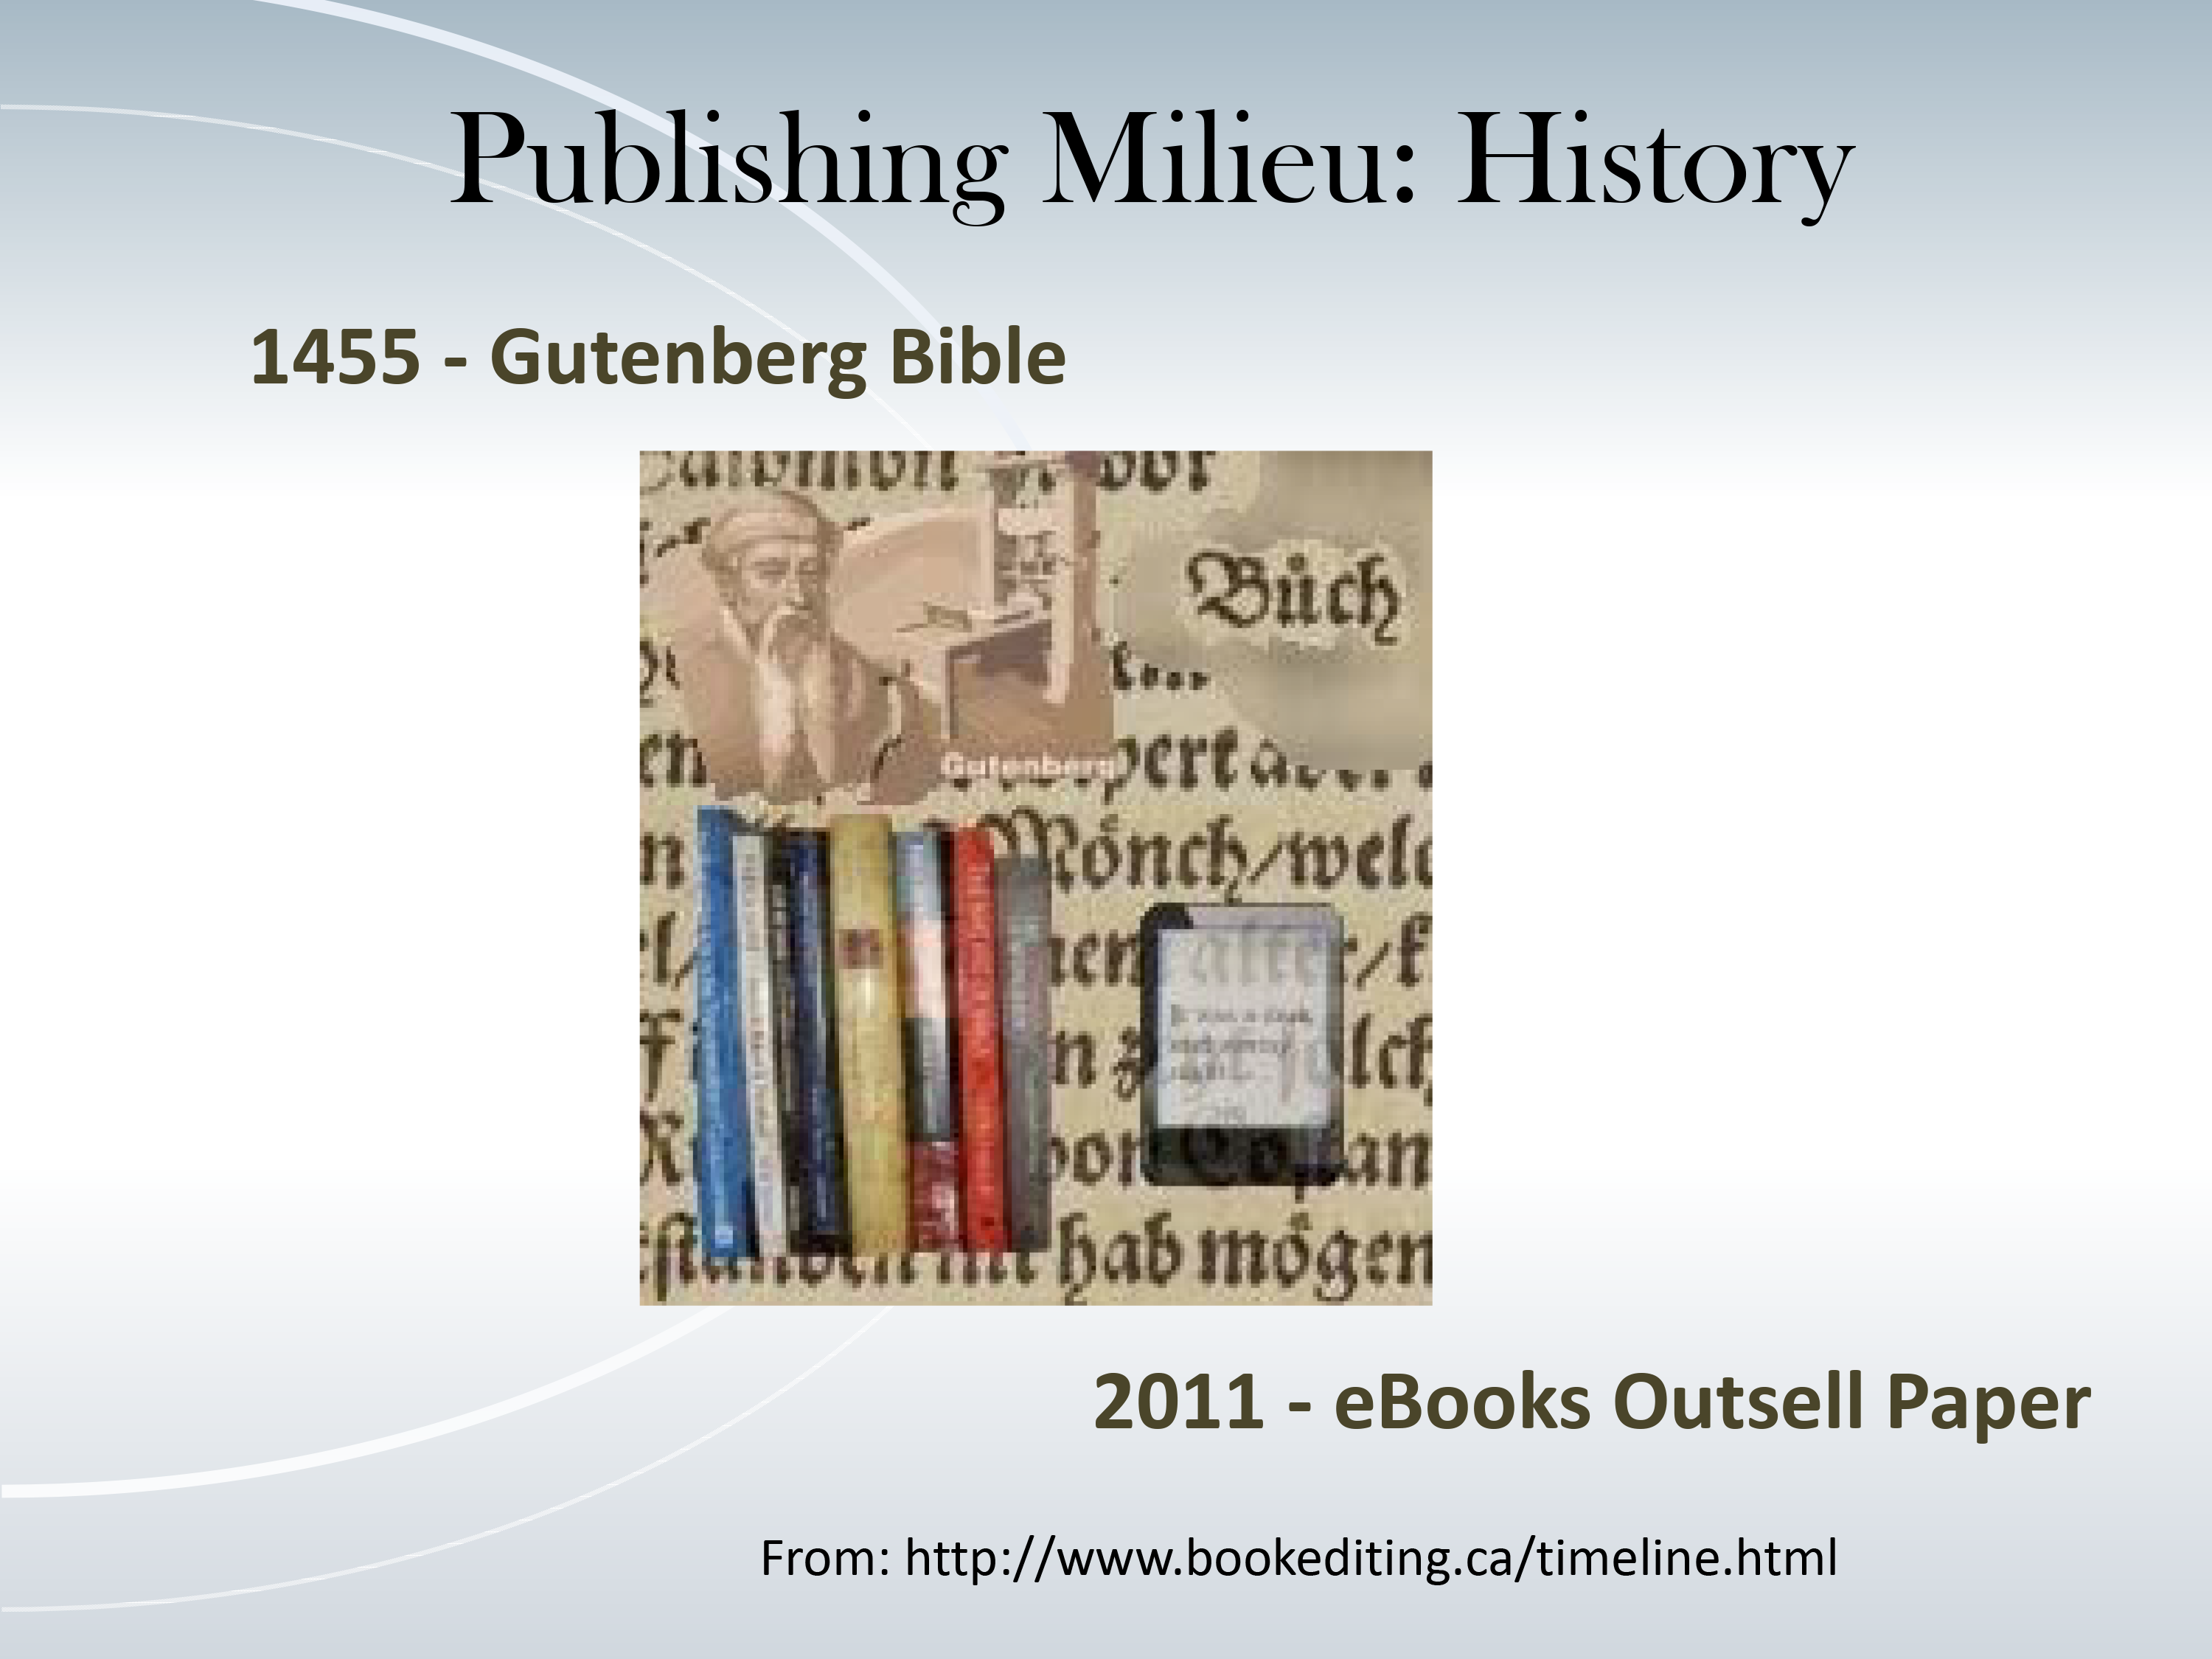 Publishing Milieu: History